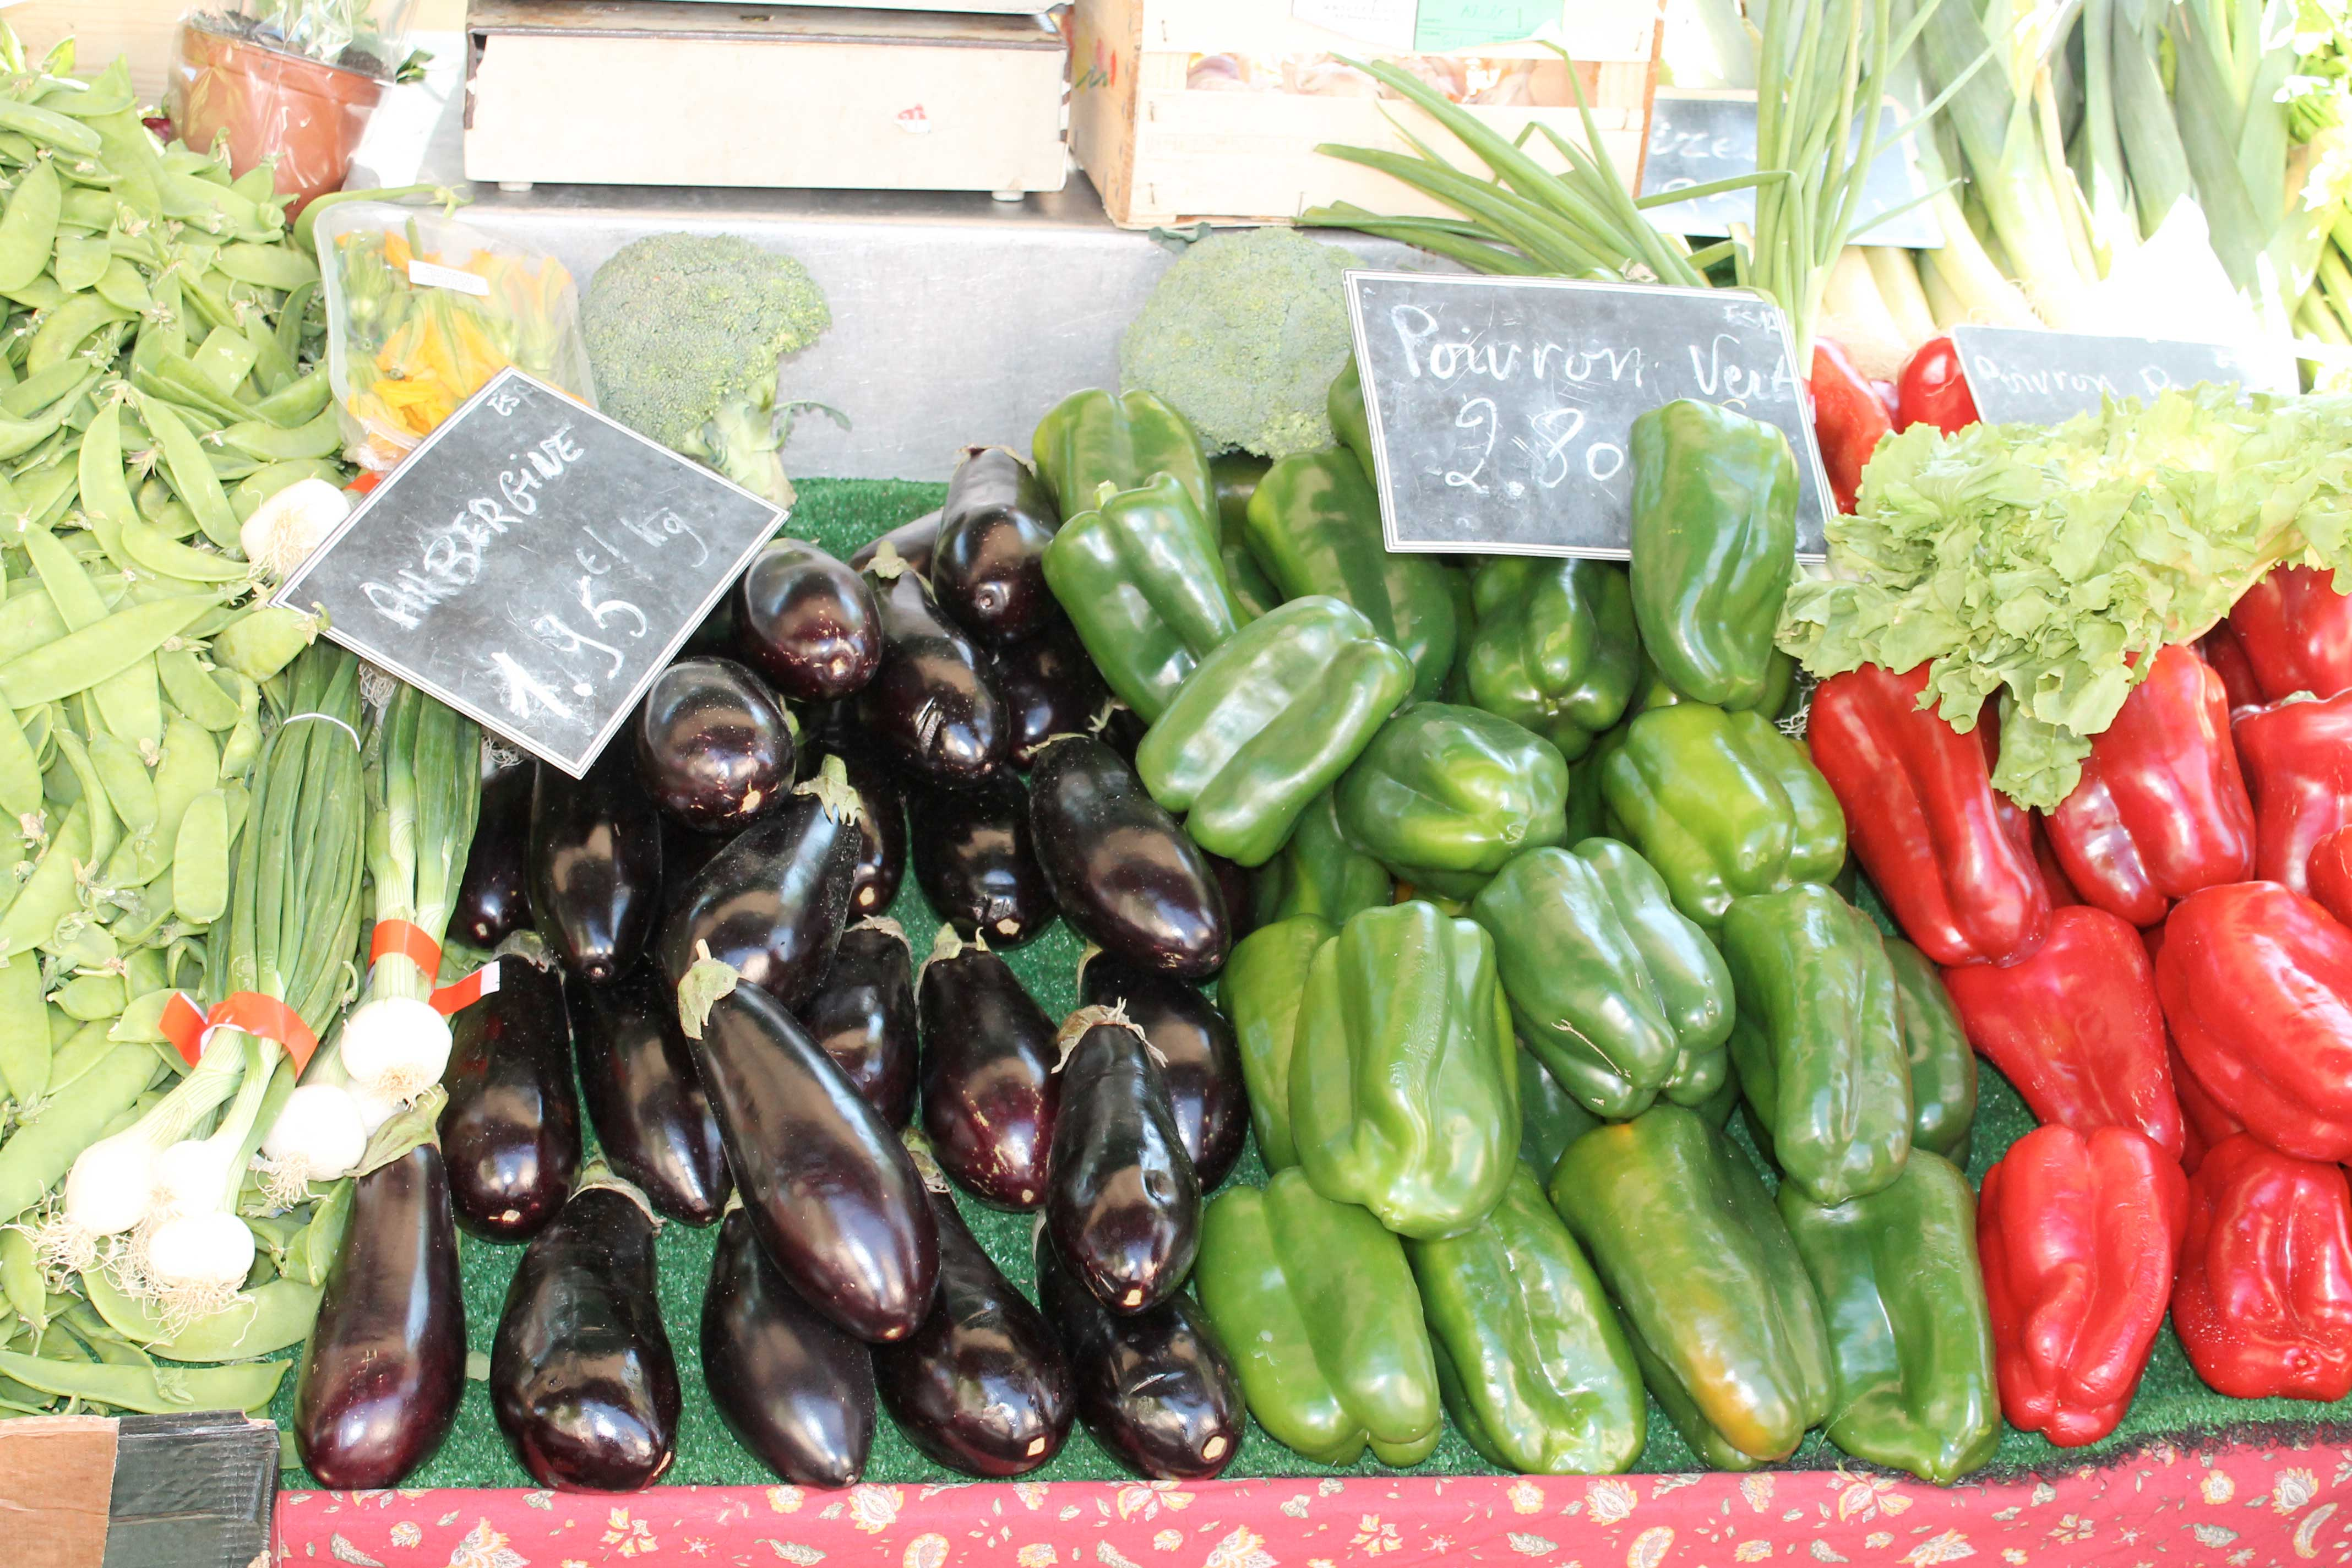 Aix en Provence market, vegetable stall